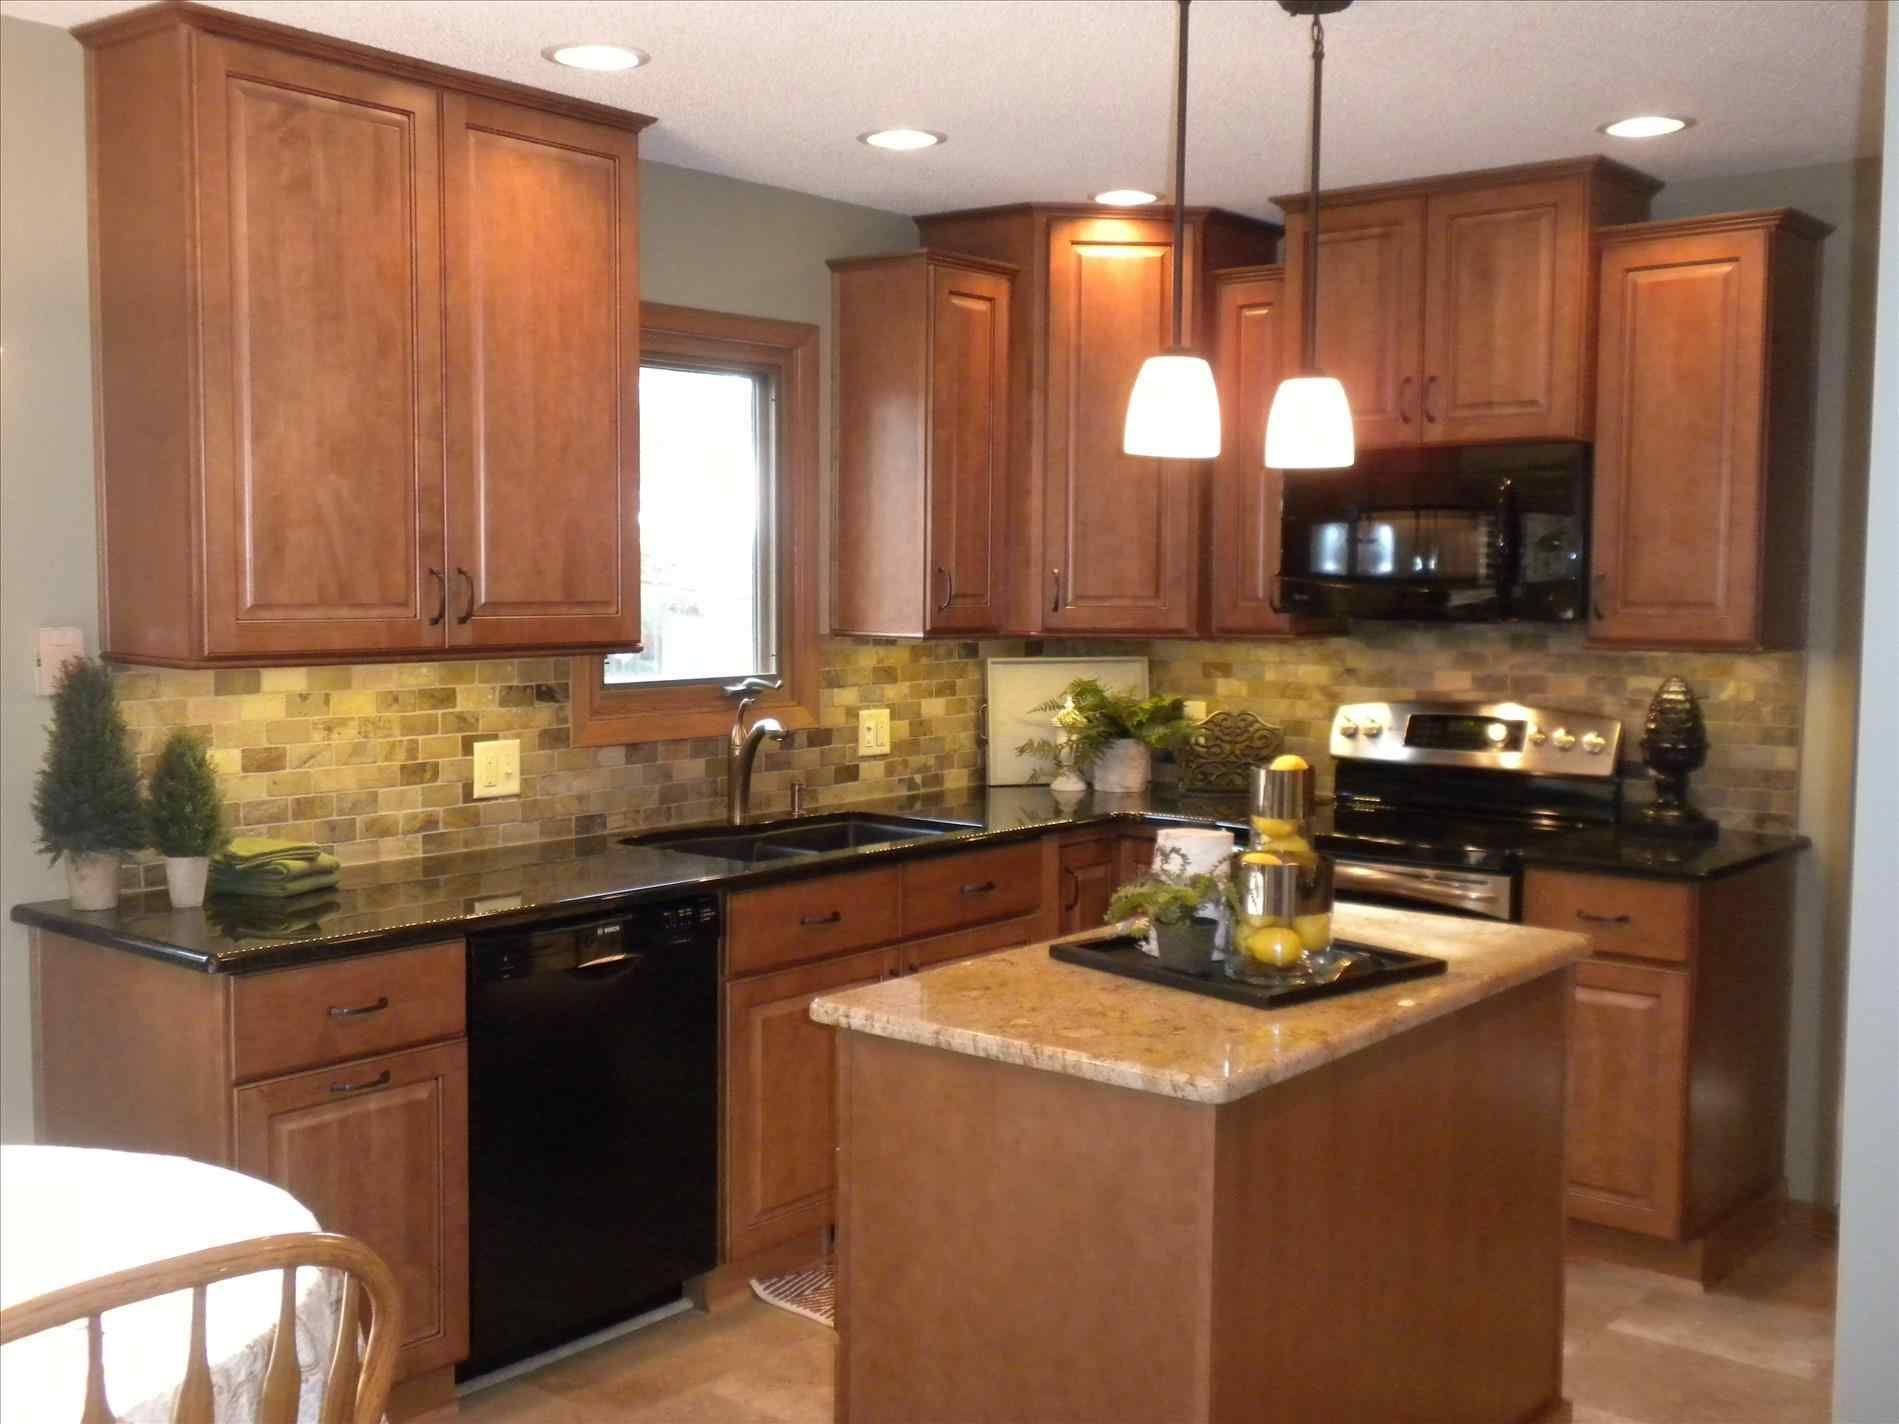 Kitchen Designs With Oak Cabinets And White Appliances Black Stainless Steel Appliances With Oak Cabinets Colors